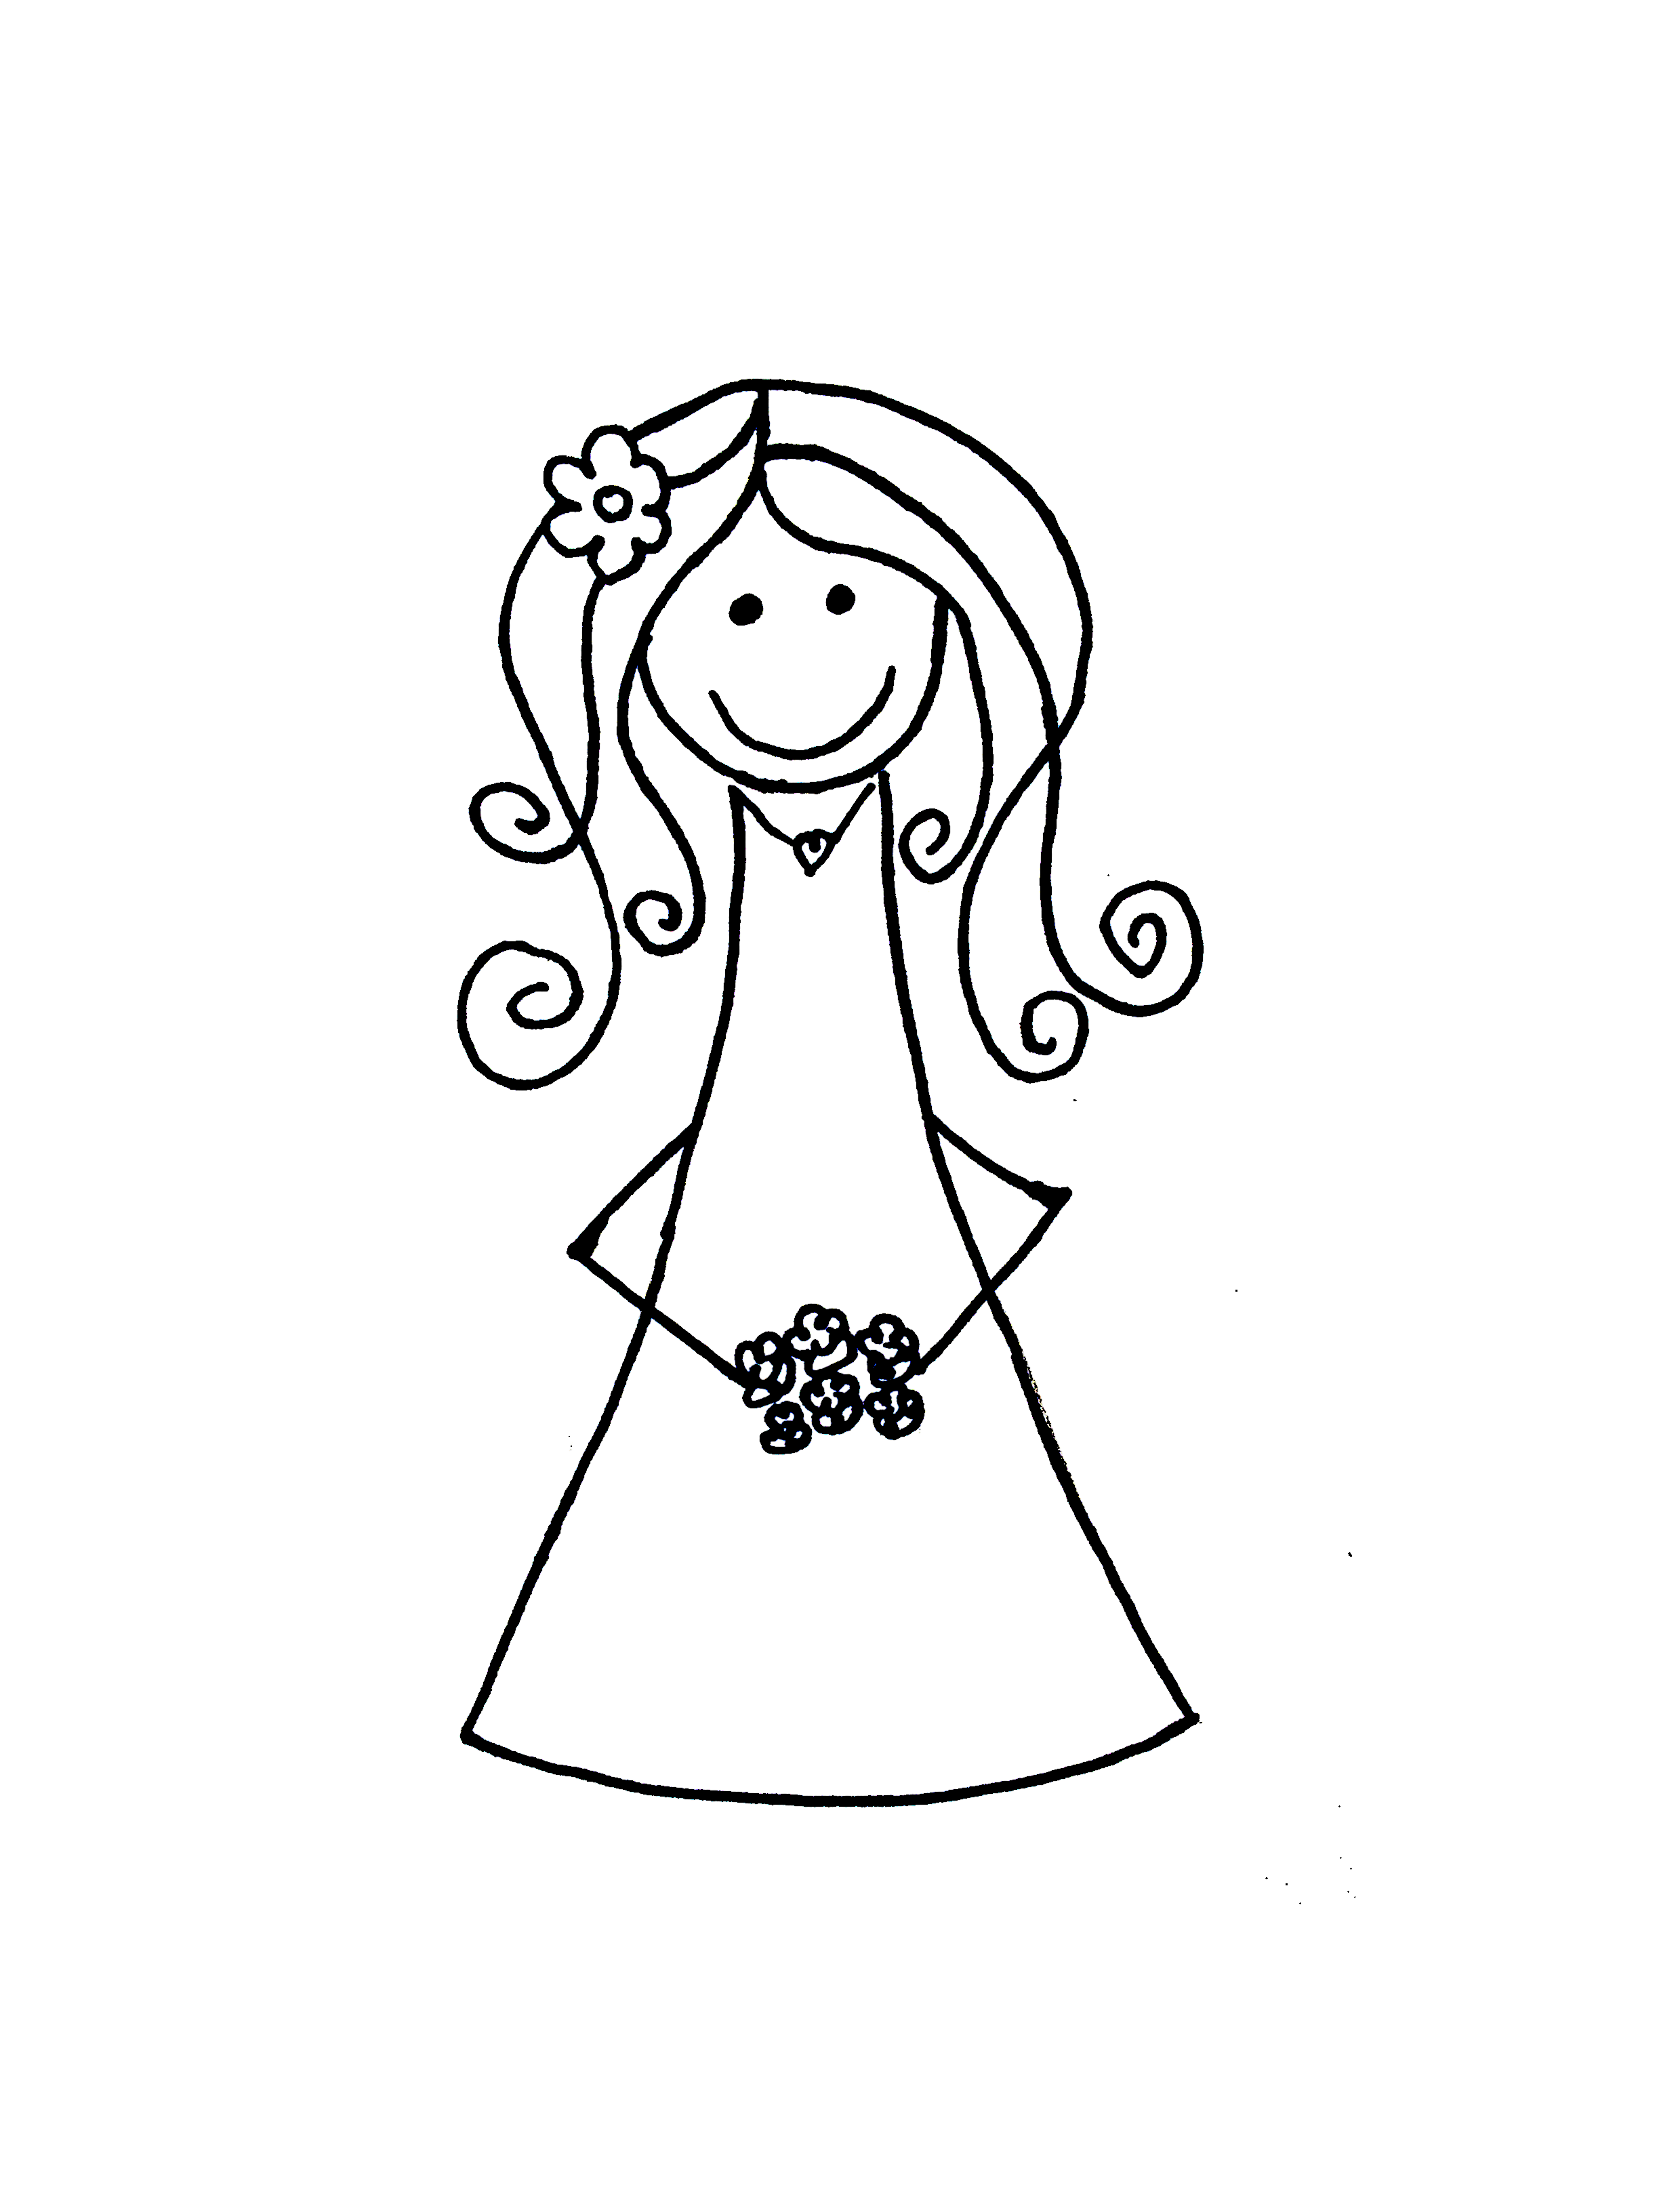 Bride cartoon clip art.